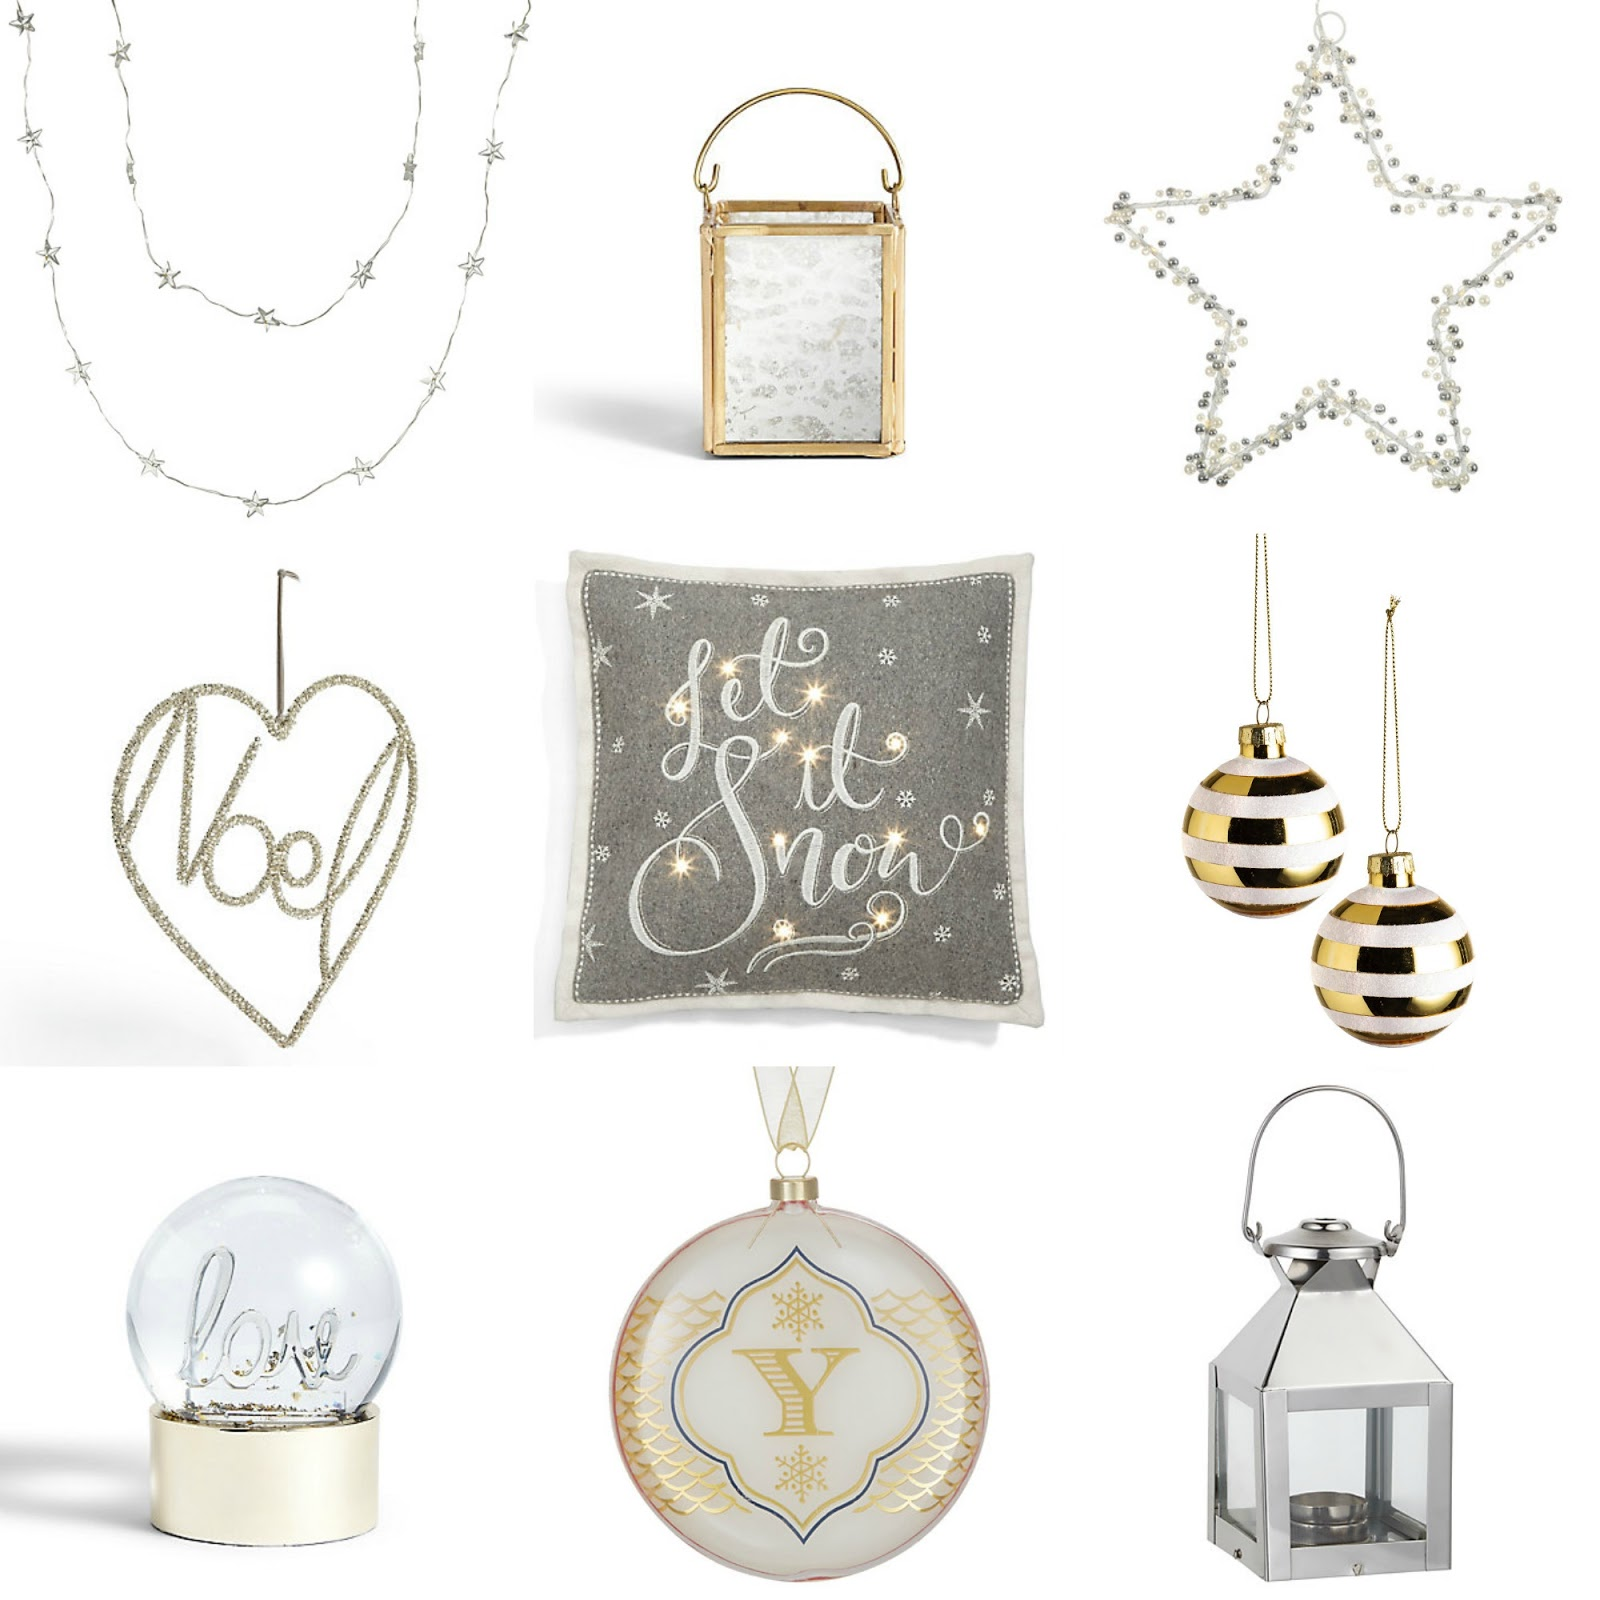 Christmas, Home, Home Decor, Interior Design, Homeware, Lifestyle, Shopping